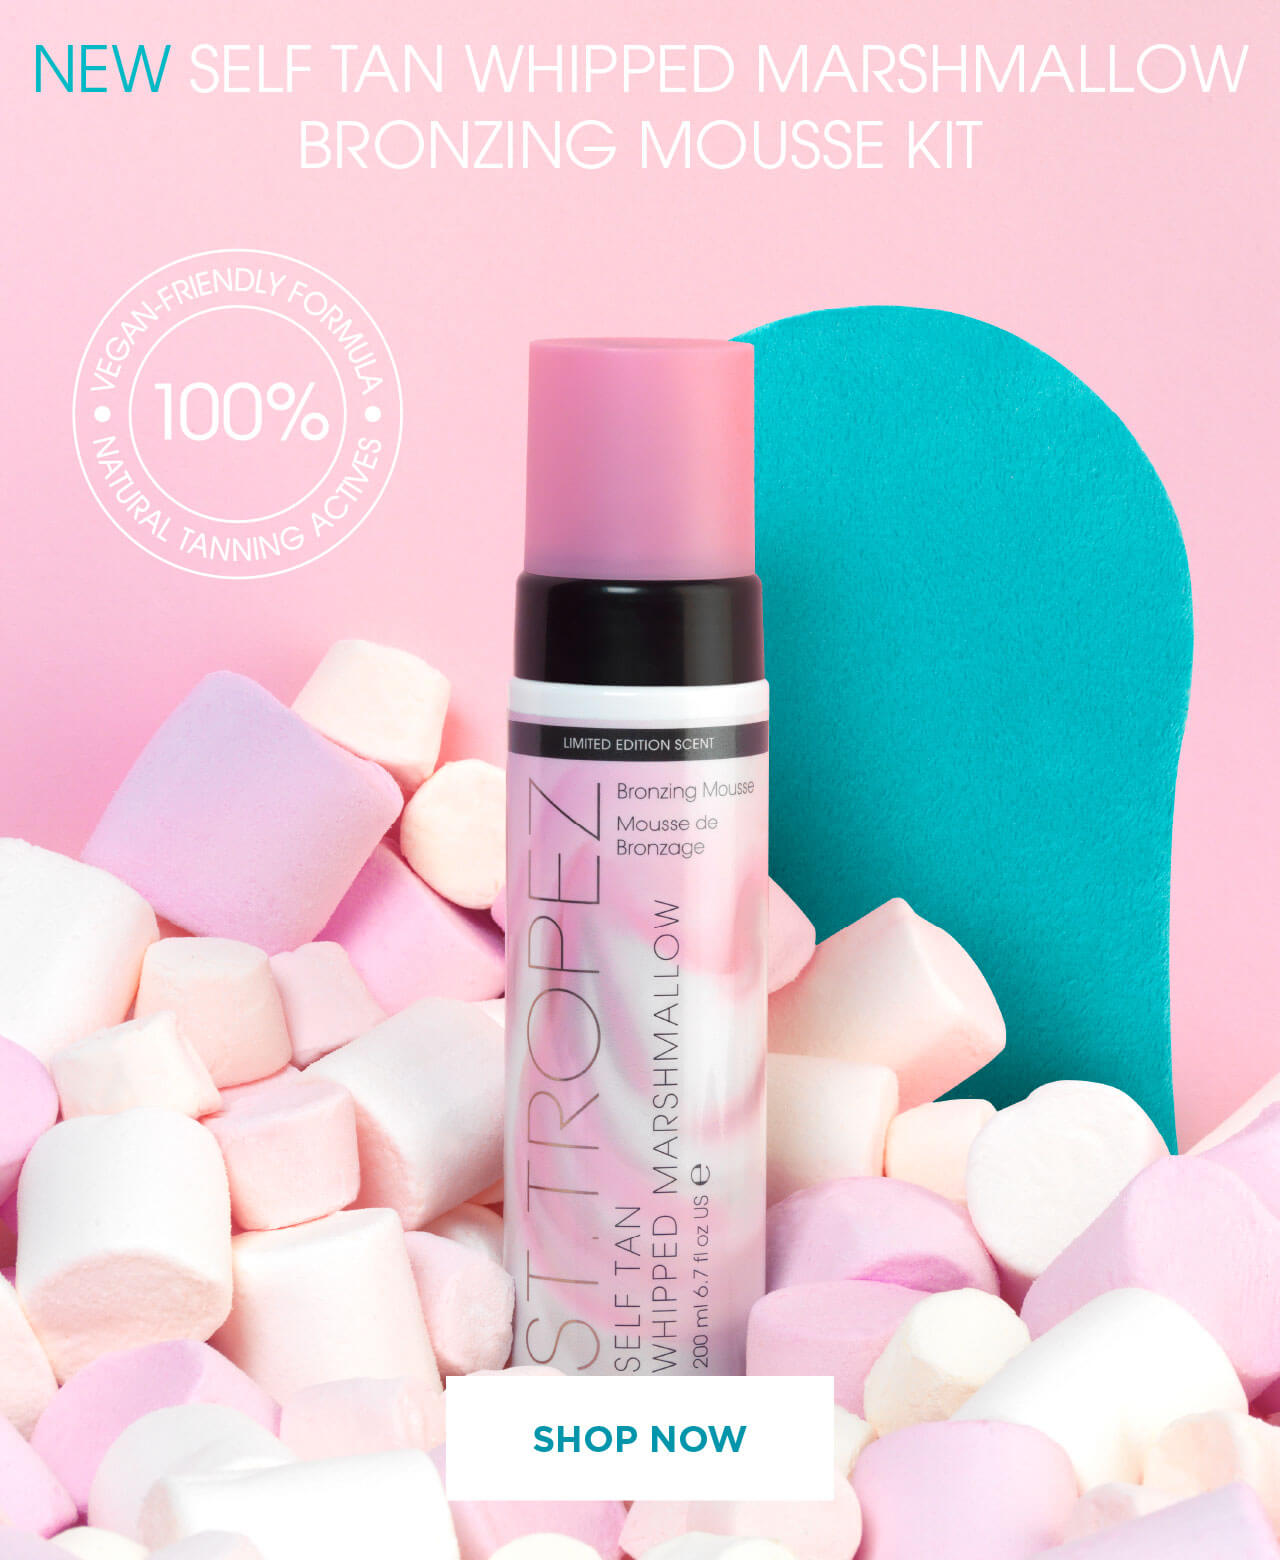 Self tan whipped marshmallow bronzing mousse kit. Shop now